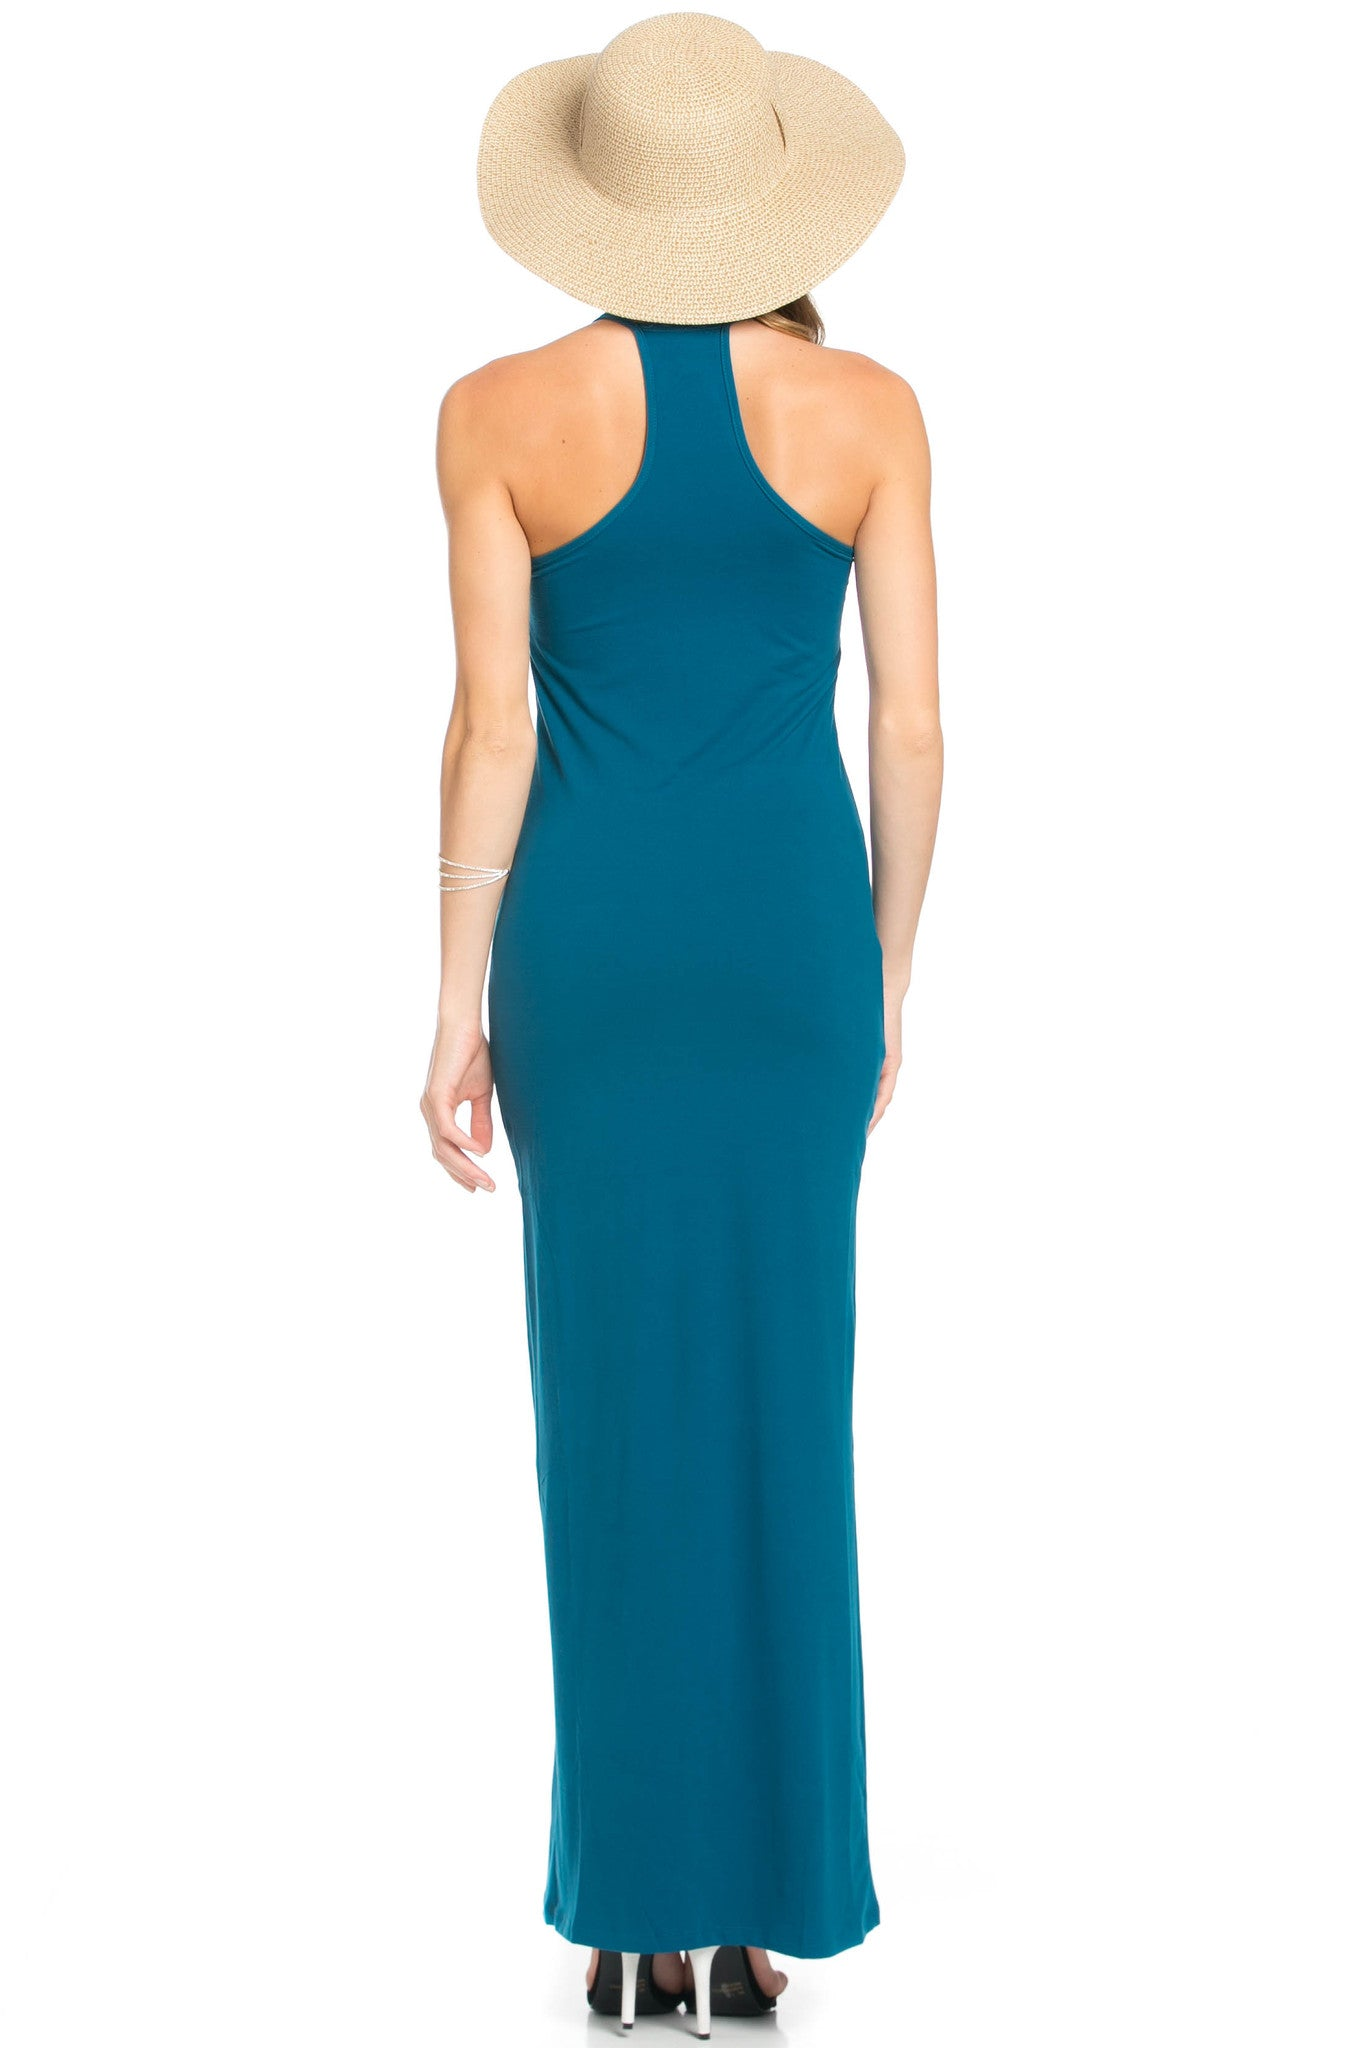 Micro Suede Teal Maxi Dress - Dresses - My Yuccie - 9